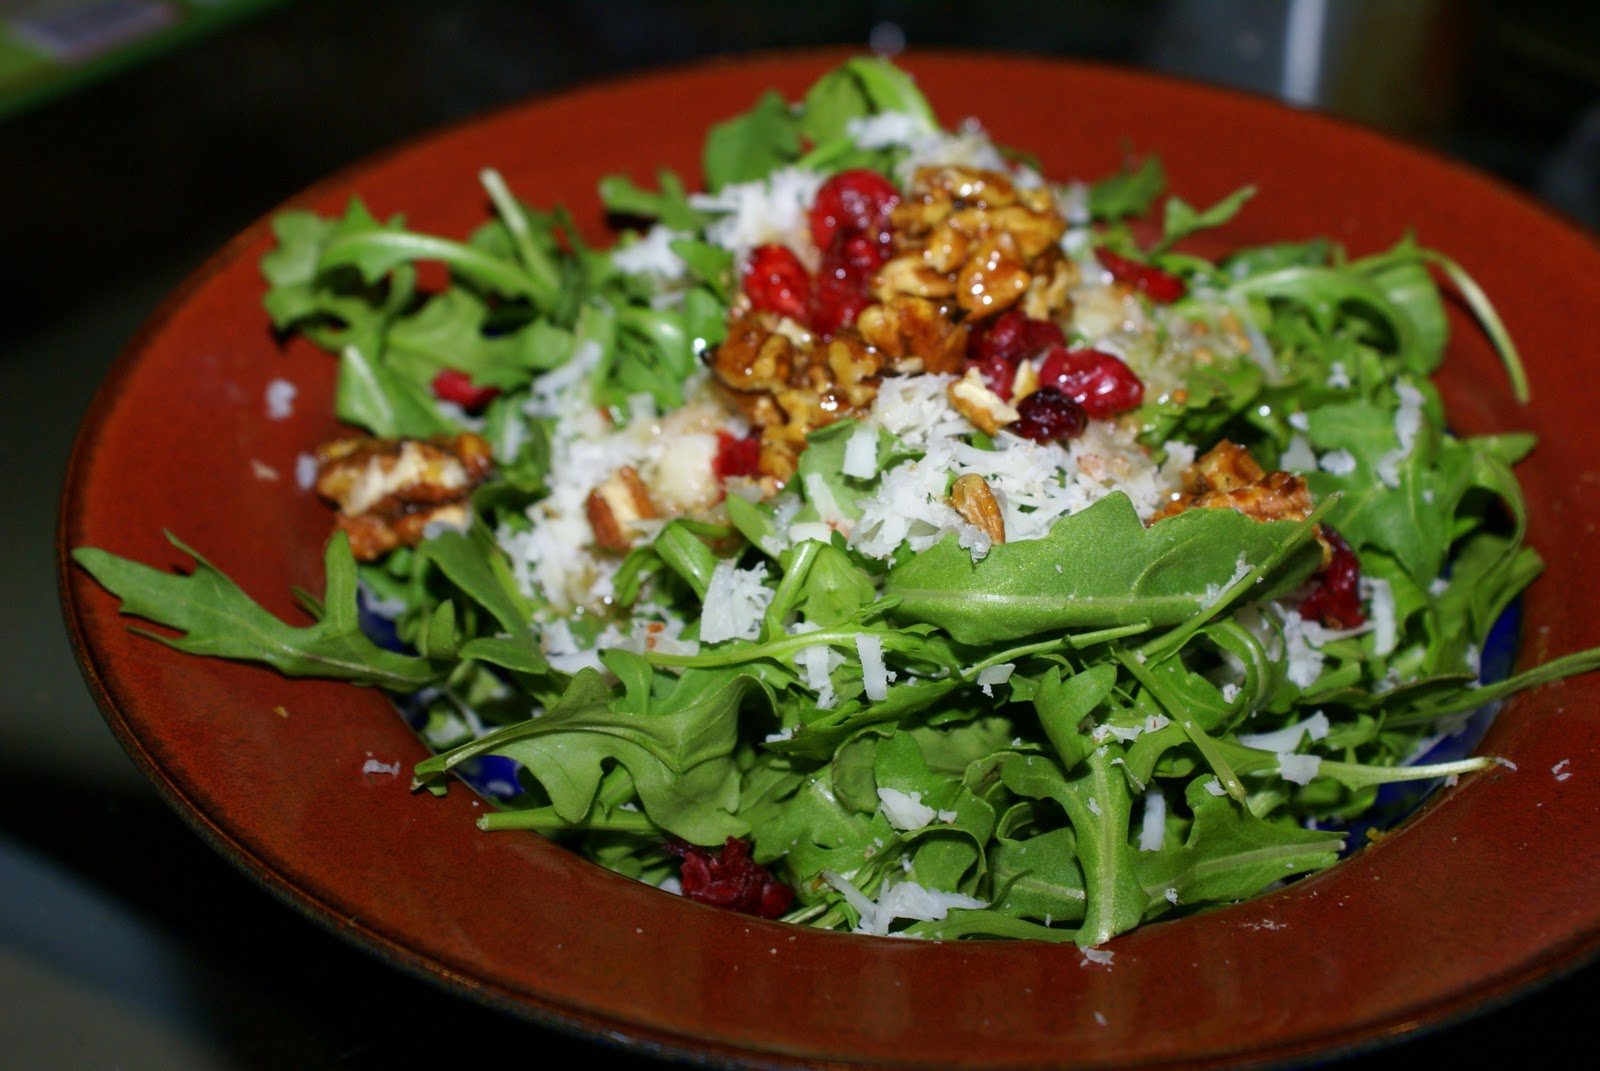 ... Salad with Manchego, Savory Praline and Whole Grain Mustard Dressing